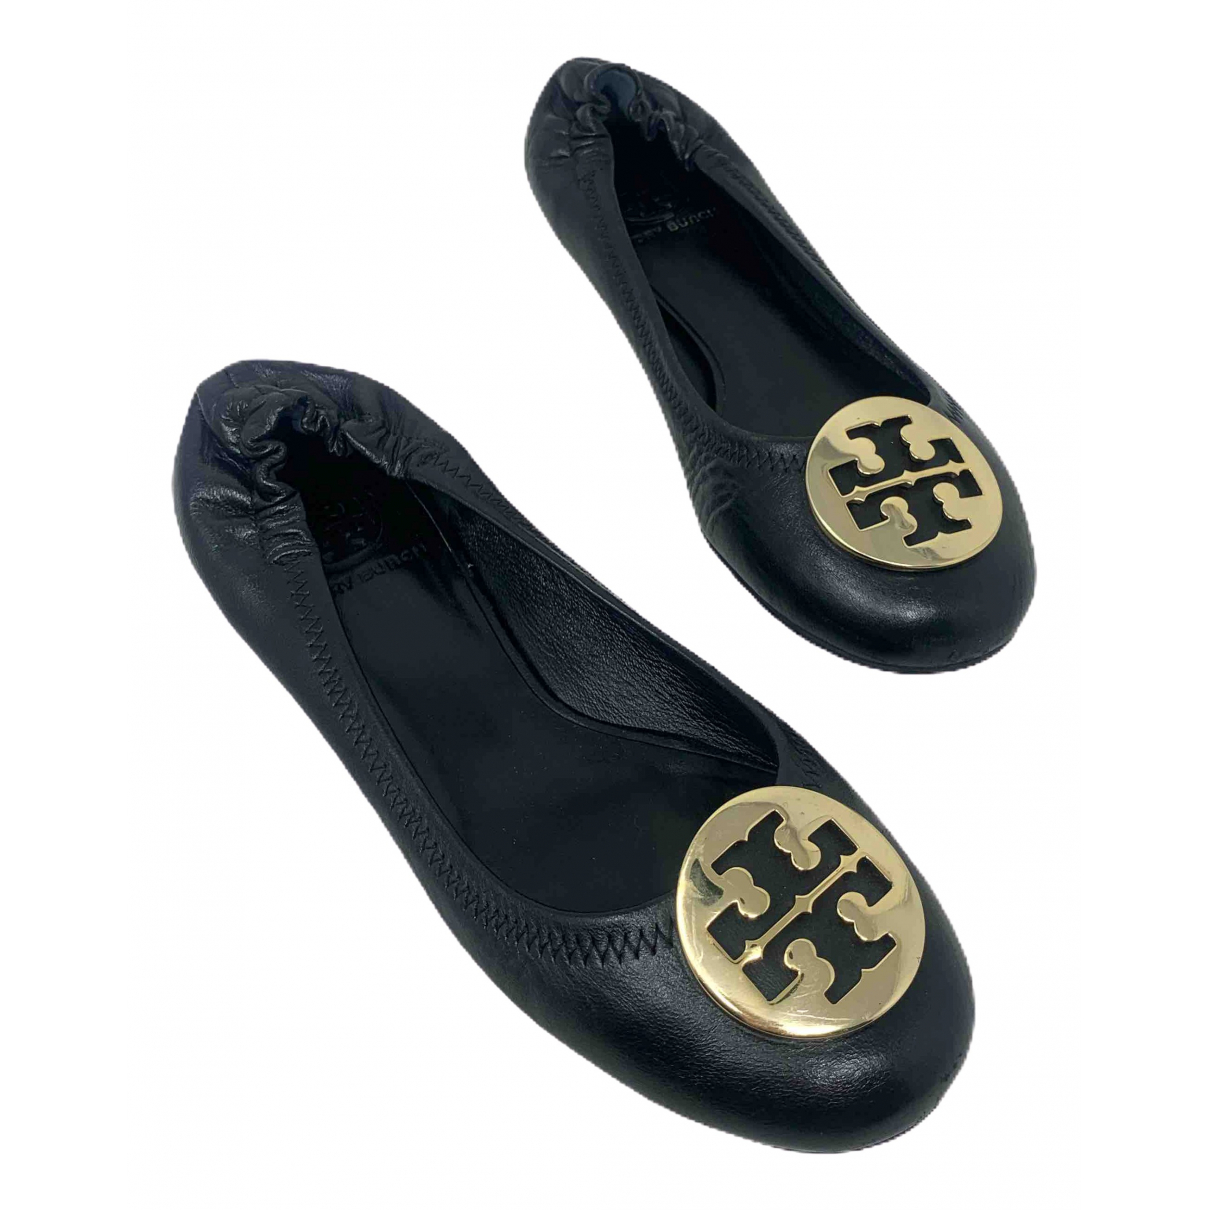 Tory Burch \N Black Leather Ballet flats for Women 37.5 EU